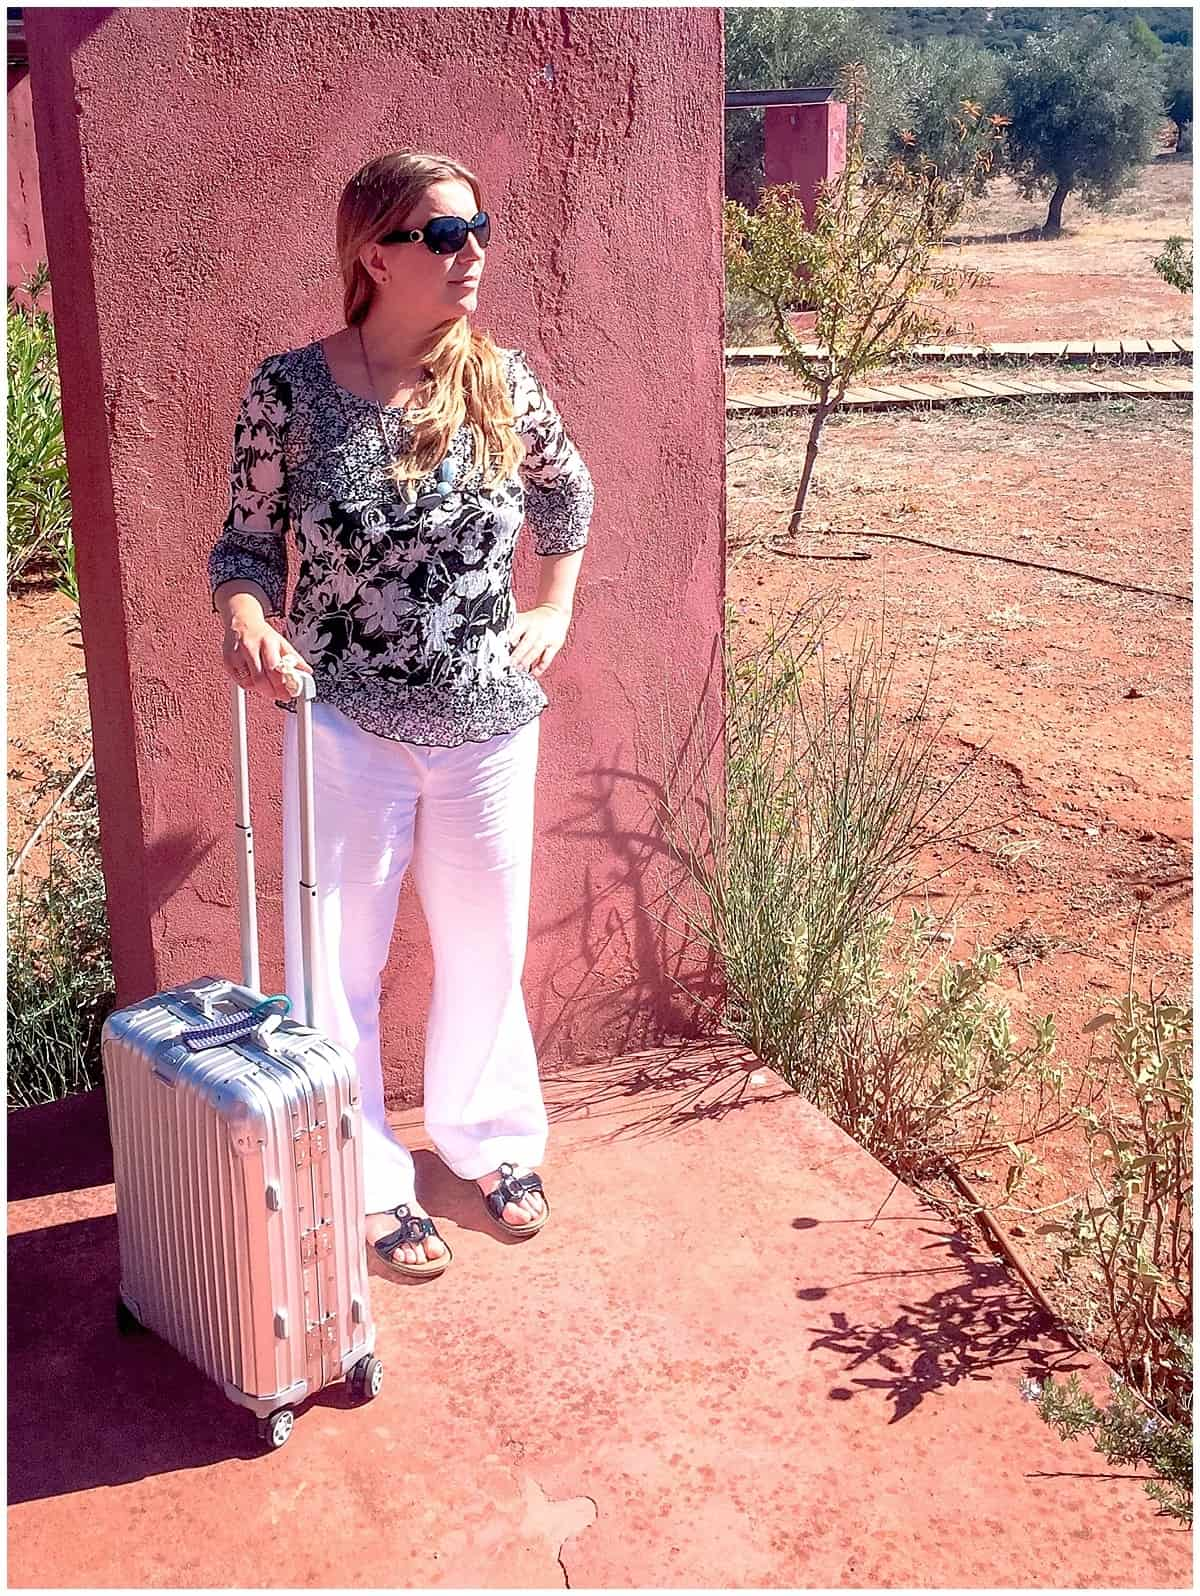 Abigail King with Carry On Suitcase